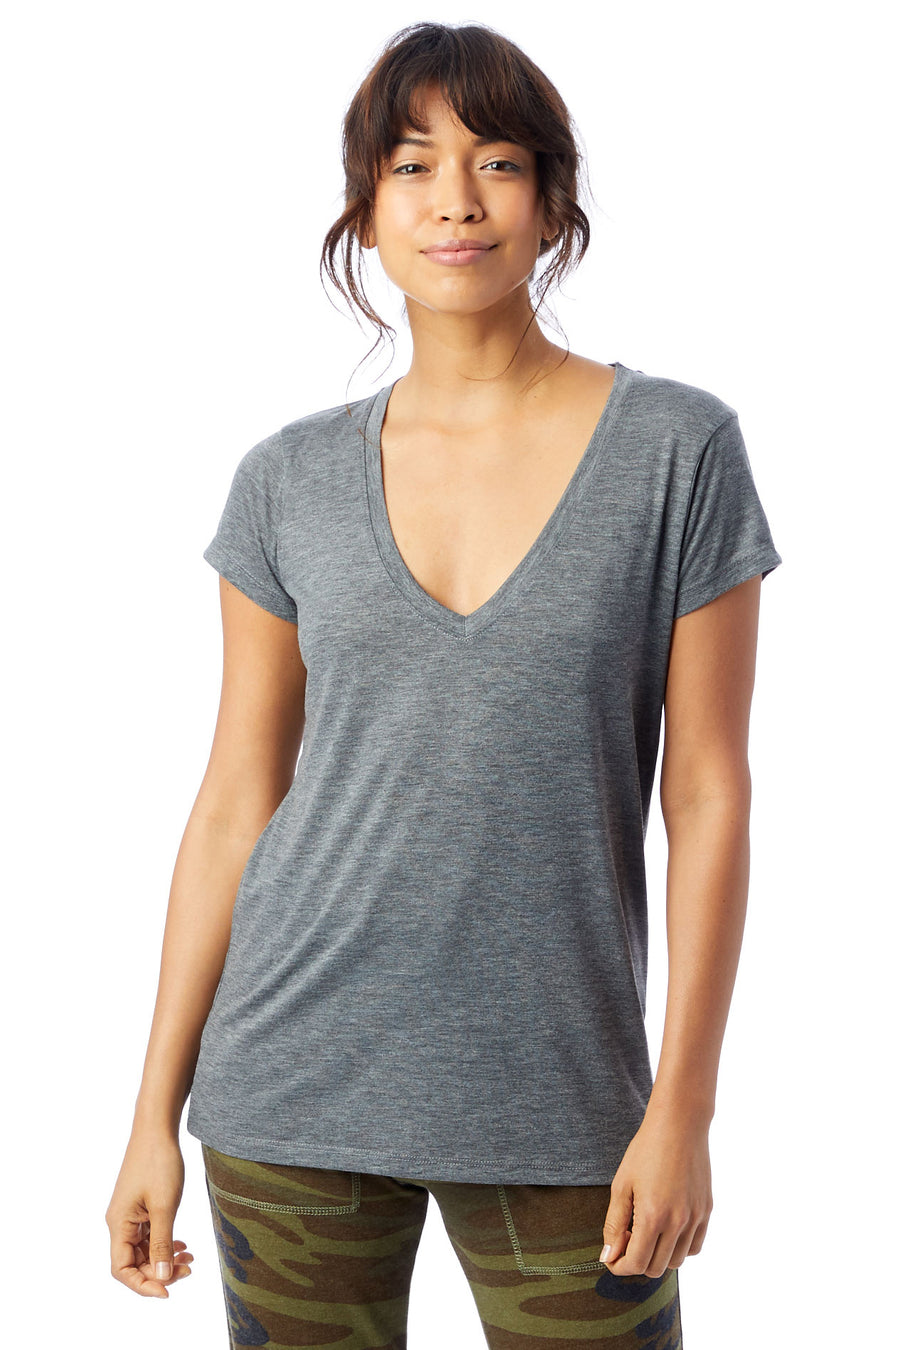 Slinky V-Neck - Ash Heather - Pavilion